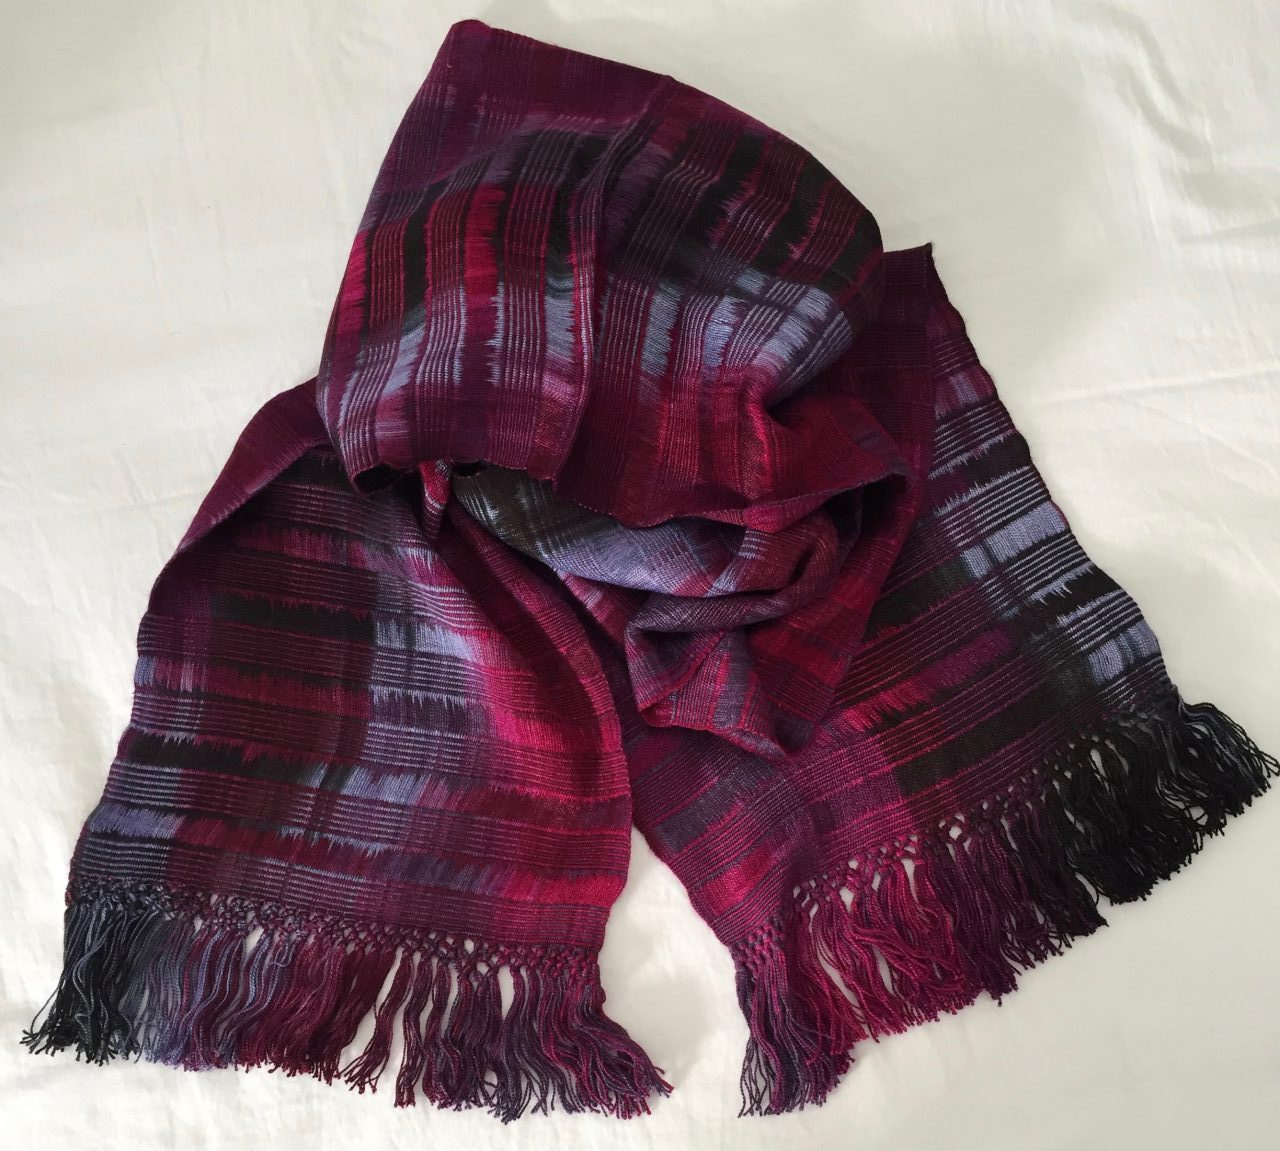 Magenta, Light Violet, Black - Lightweight Bamboo Open-Weave Handwoven Scarf 8 x 68